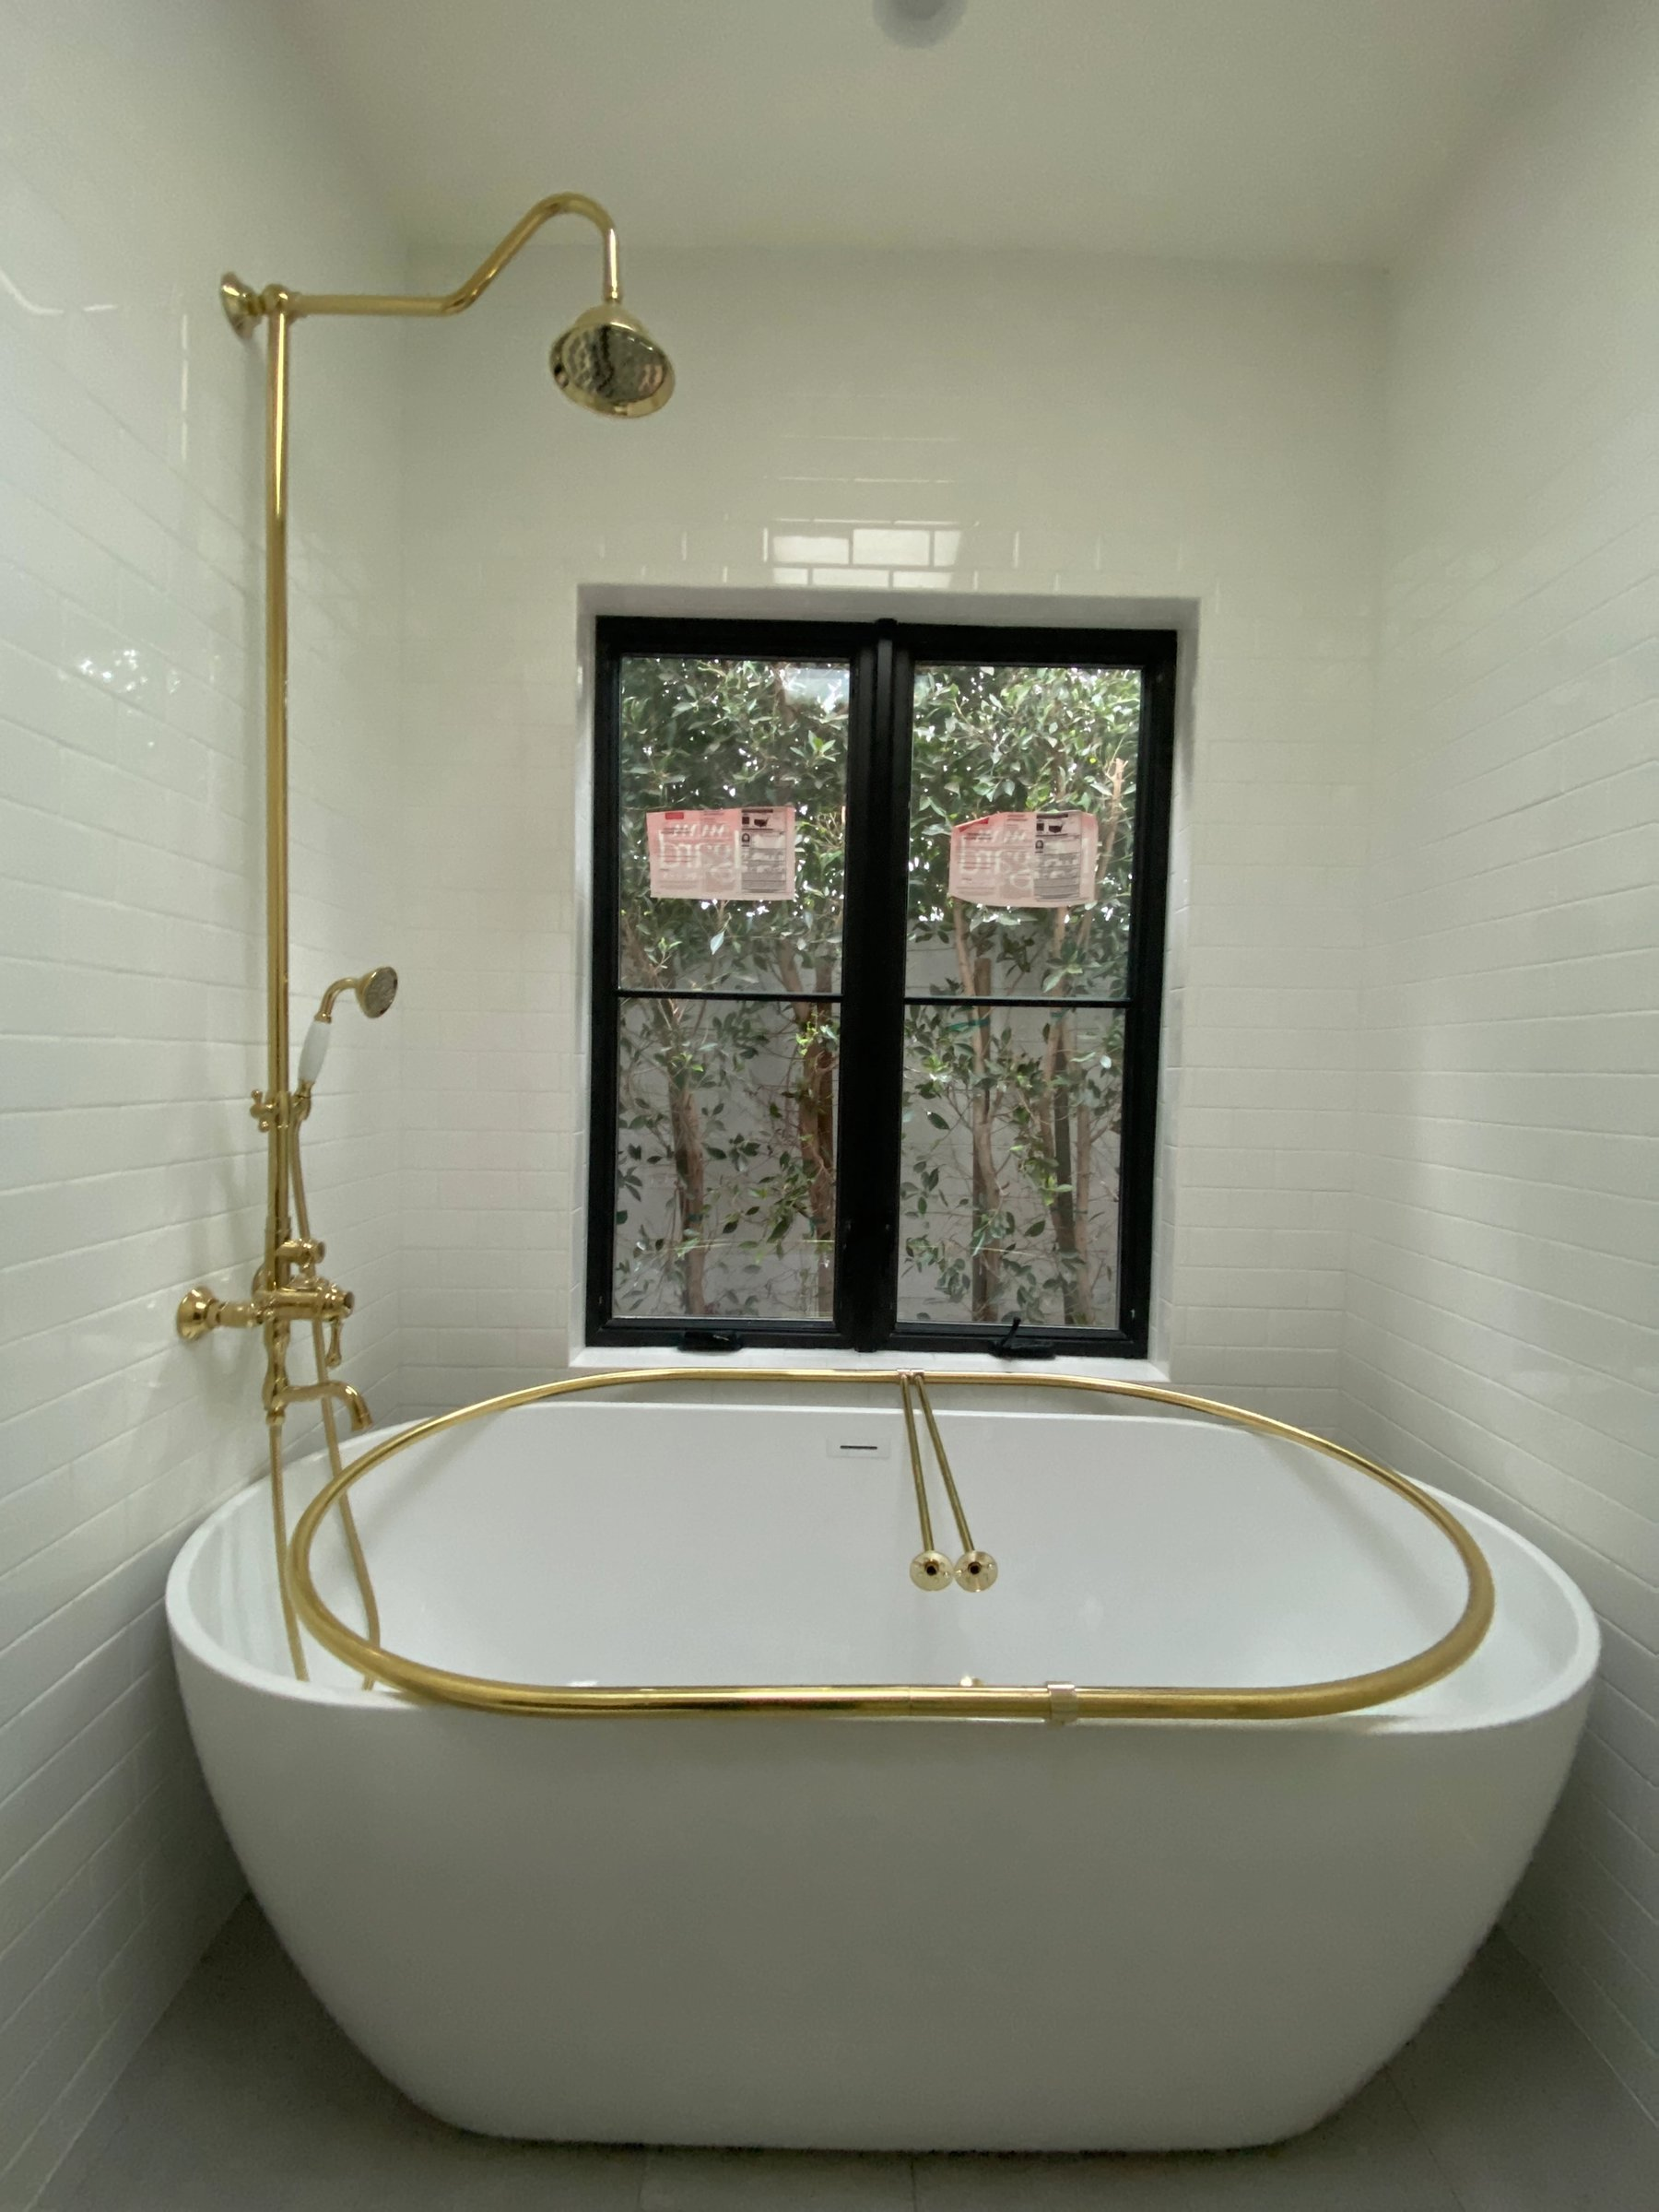 A free-standing soaking tub with a classic shower kit and oval curtain rod